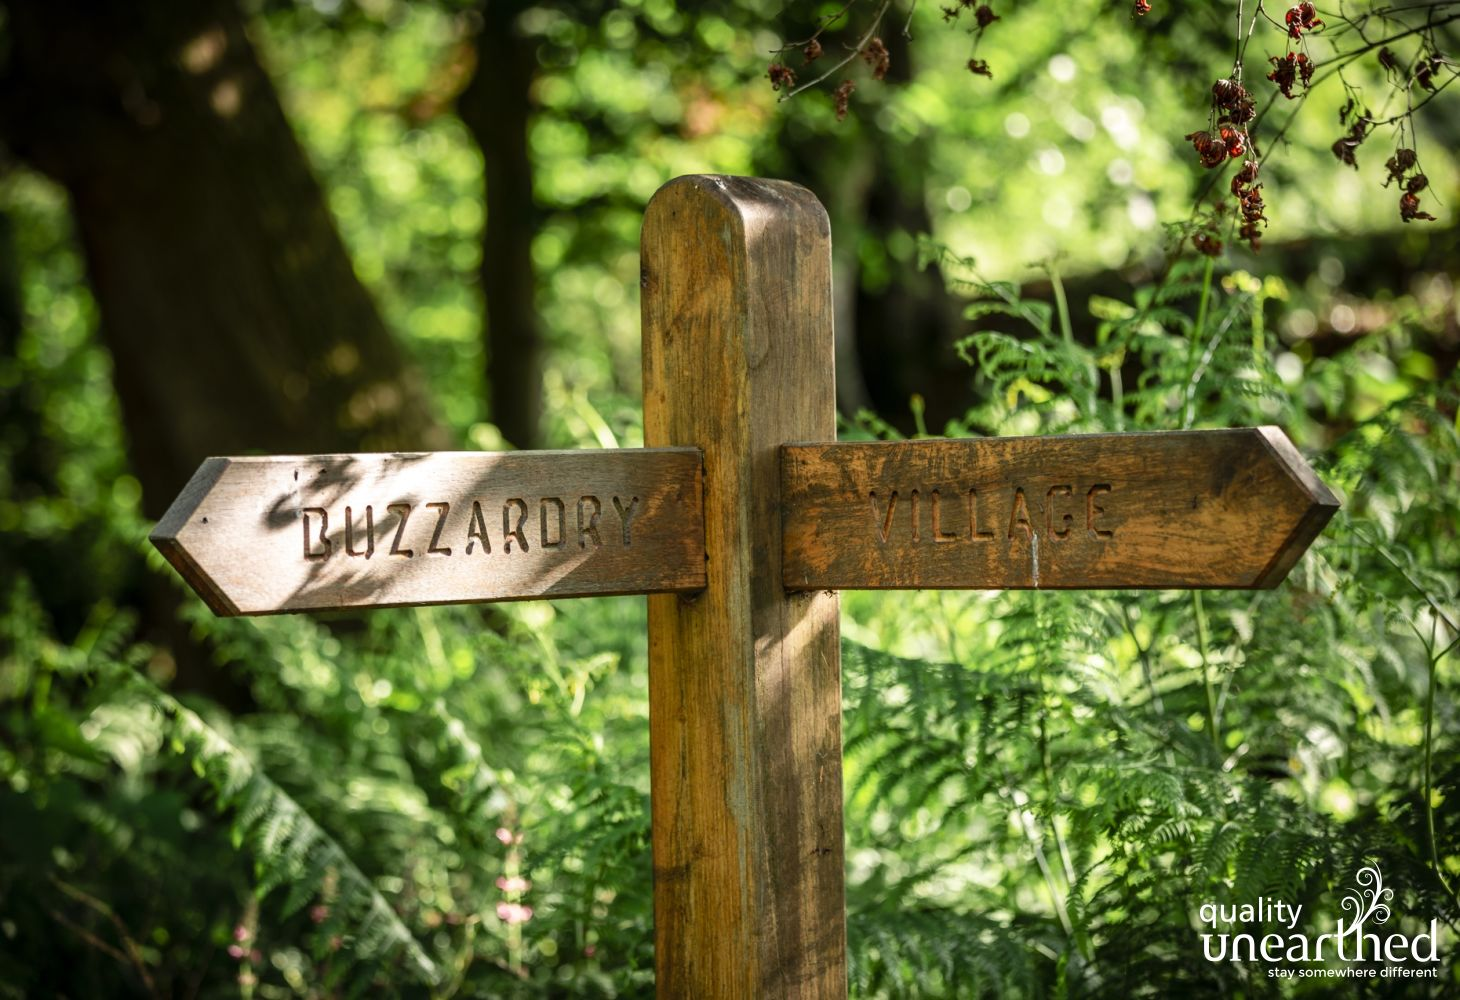 A sign to the Buzzardy Treehouse or to the village